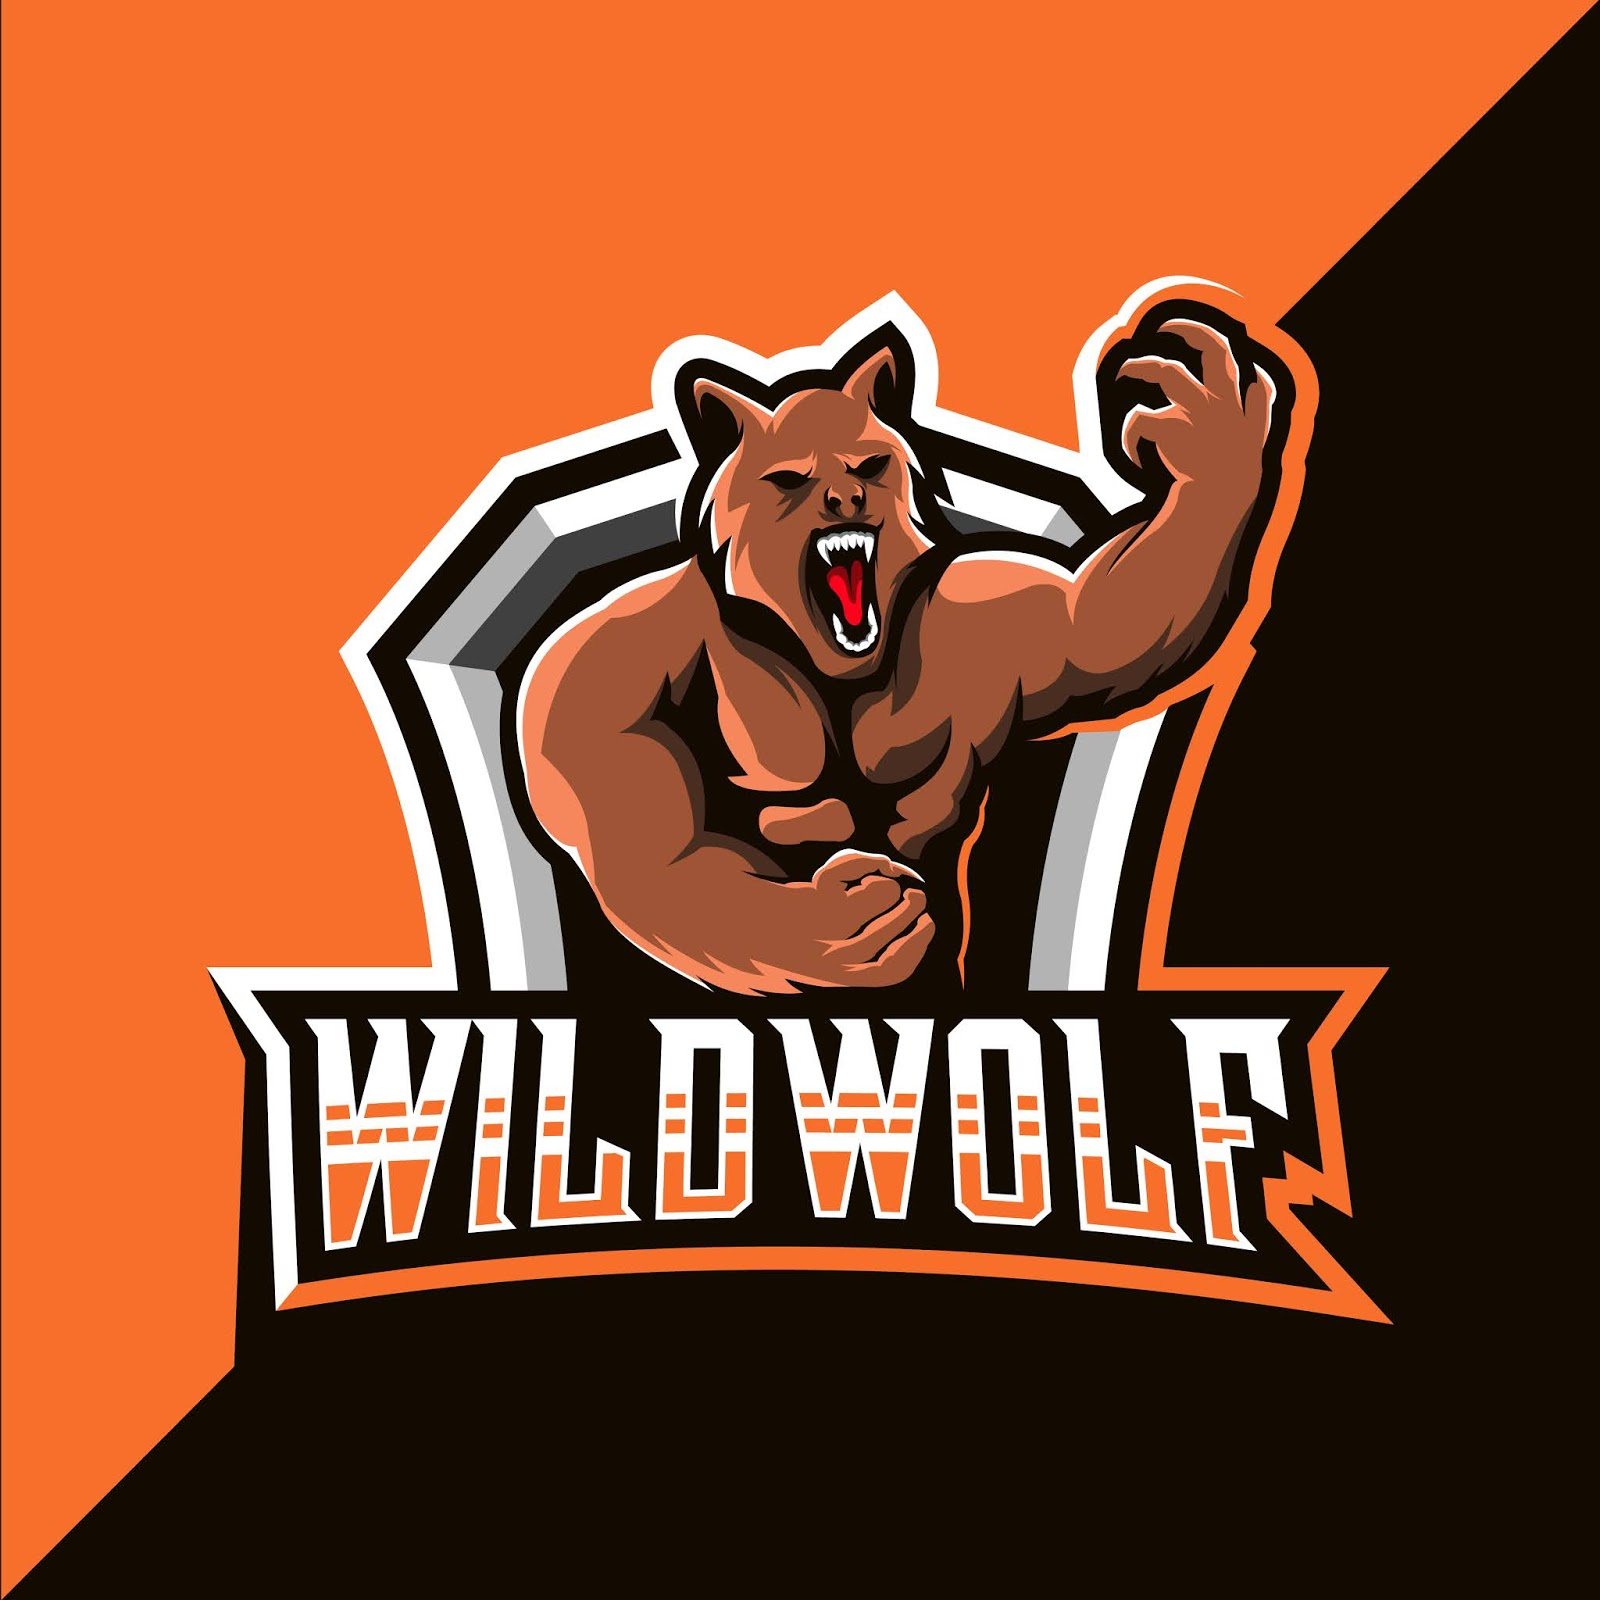 Wild Wolf Mascot Esport Logo Design Free Download Vector CDR, AI, EPS and PNG Formats